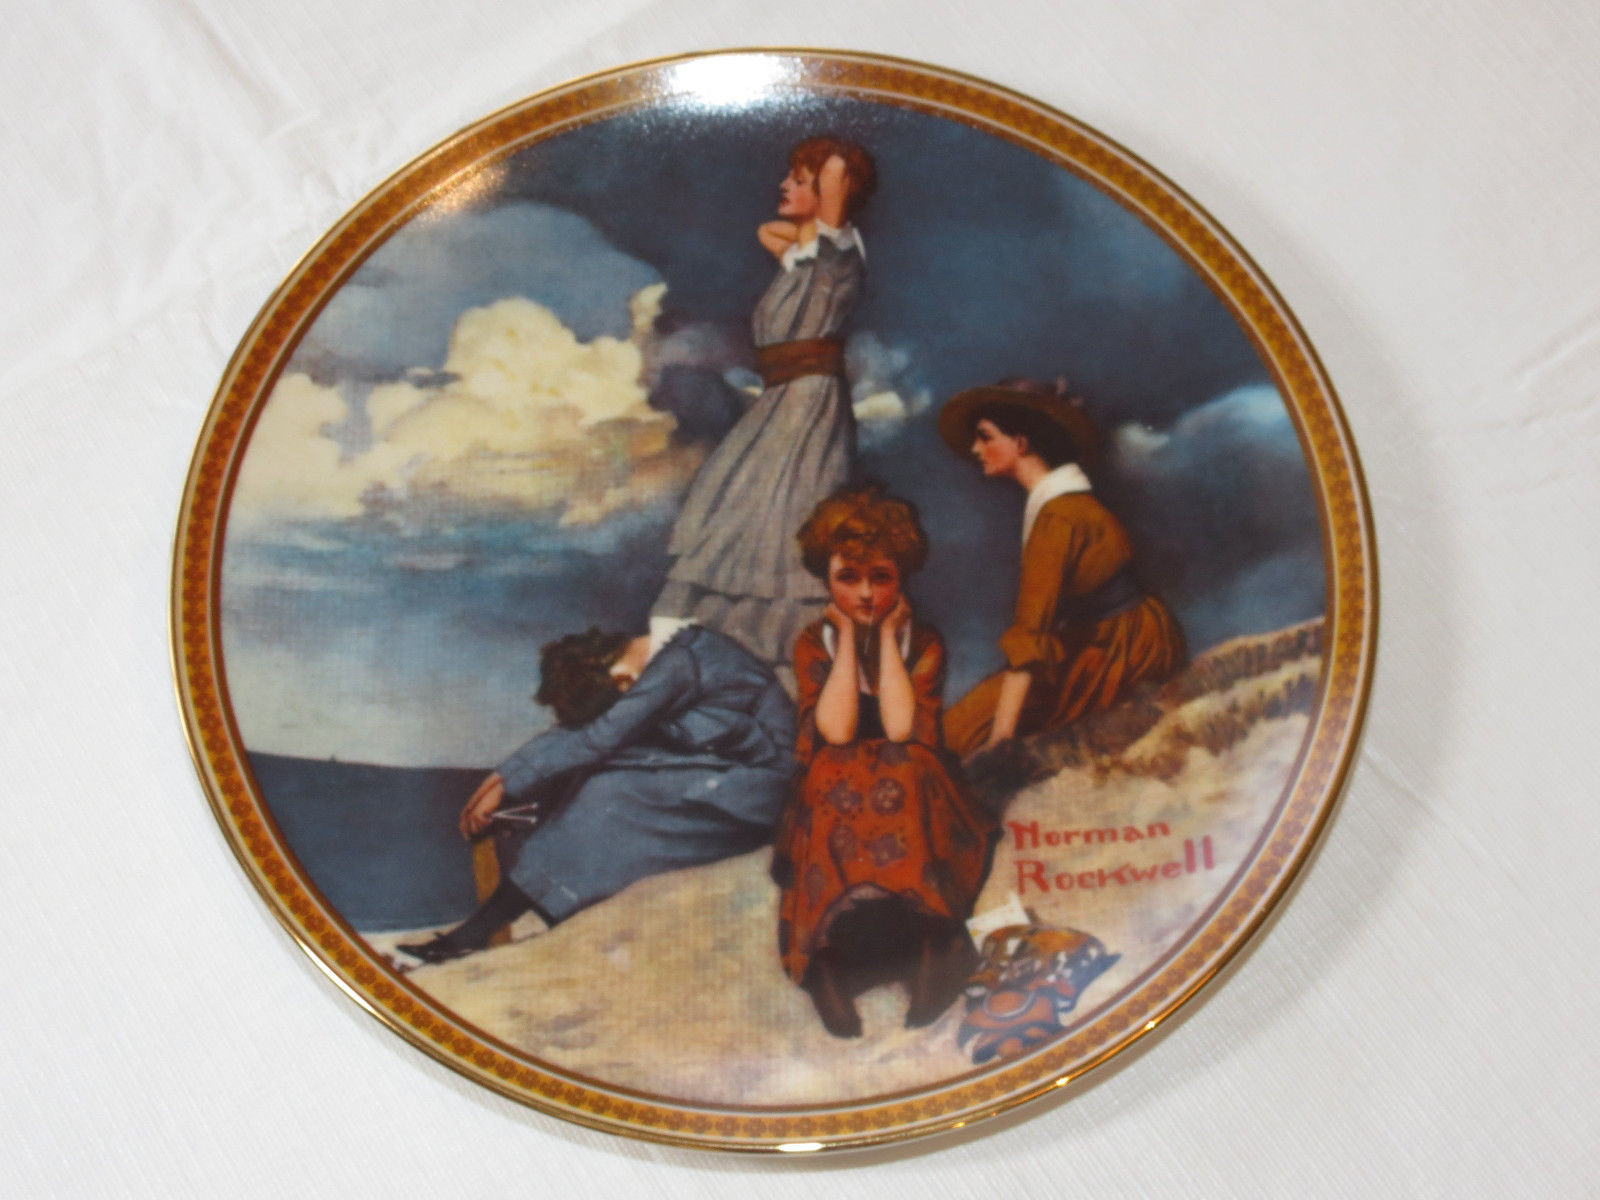 Primary image for Norman Rockwell's Waiting on the Shore 17800 0 collector plate Knowles China ~